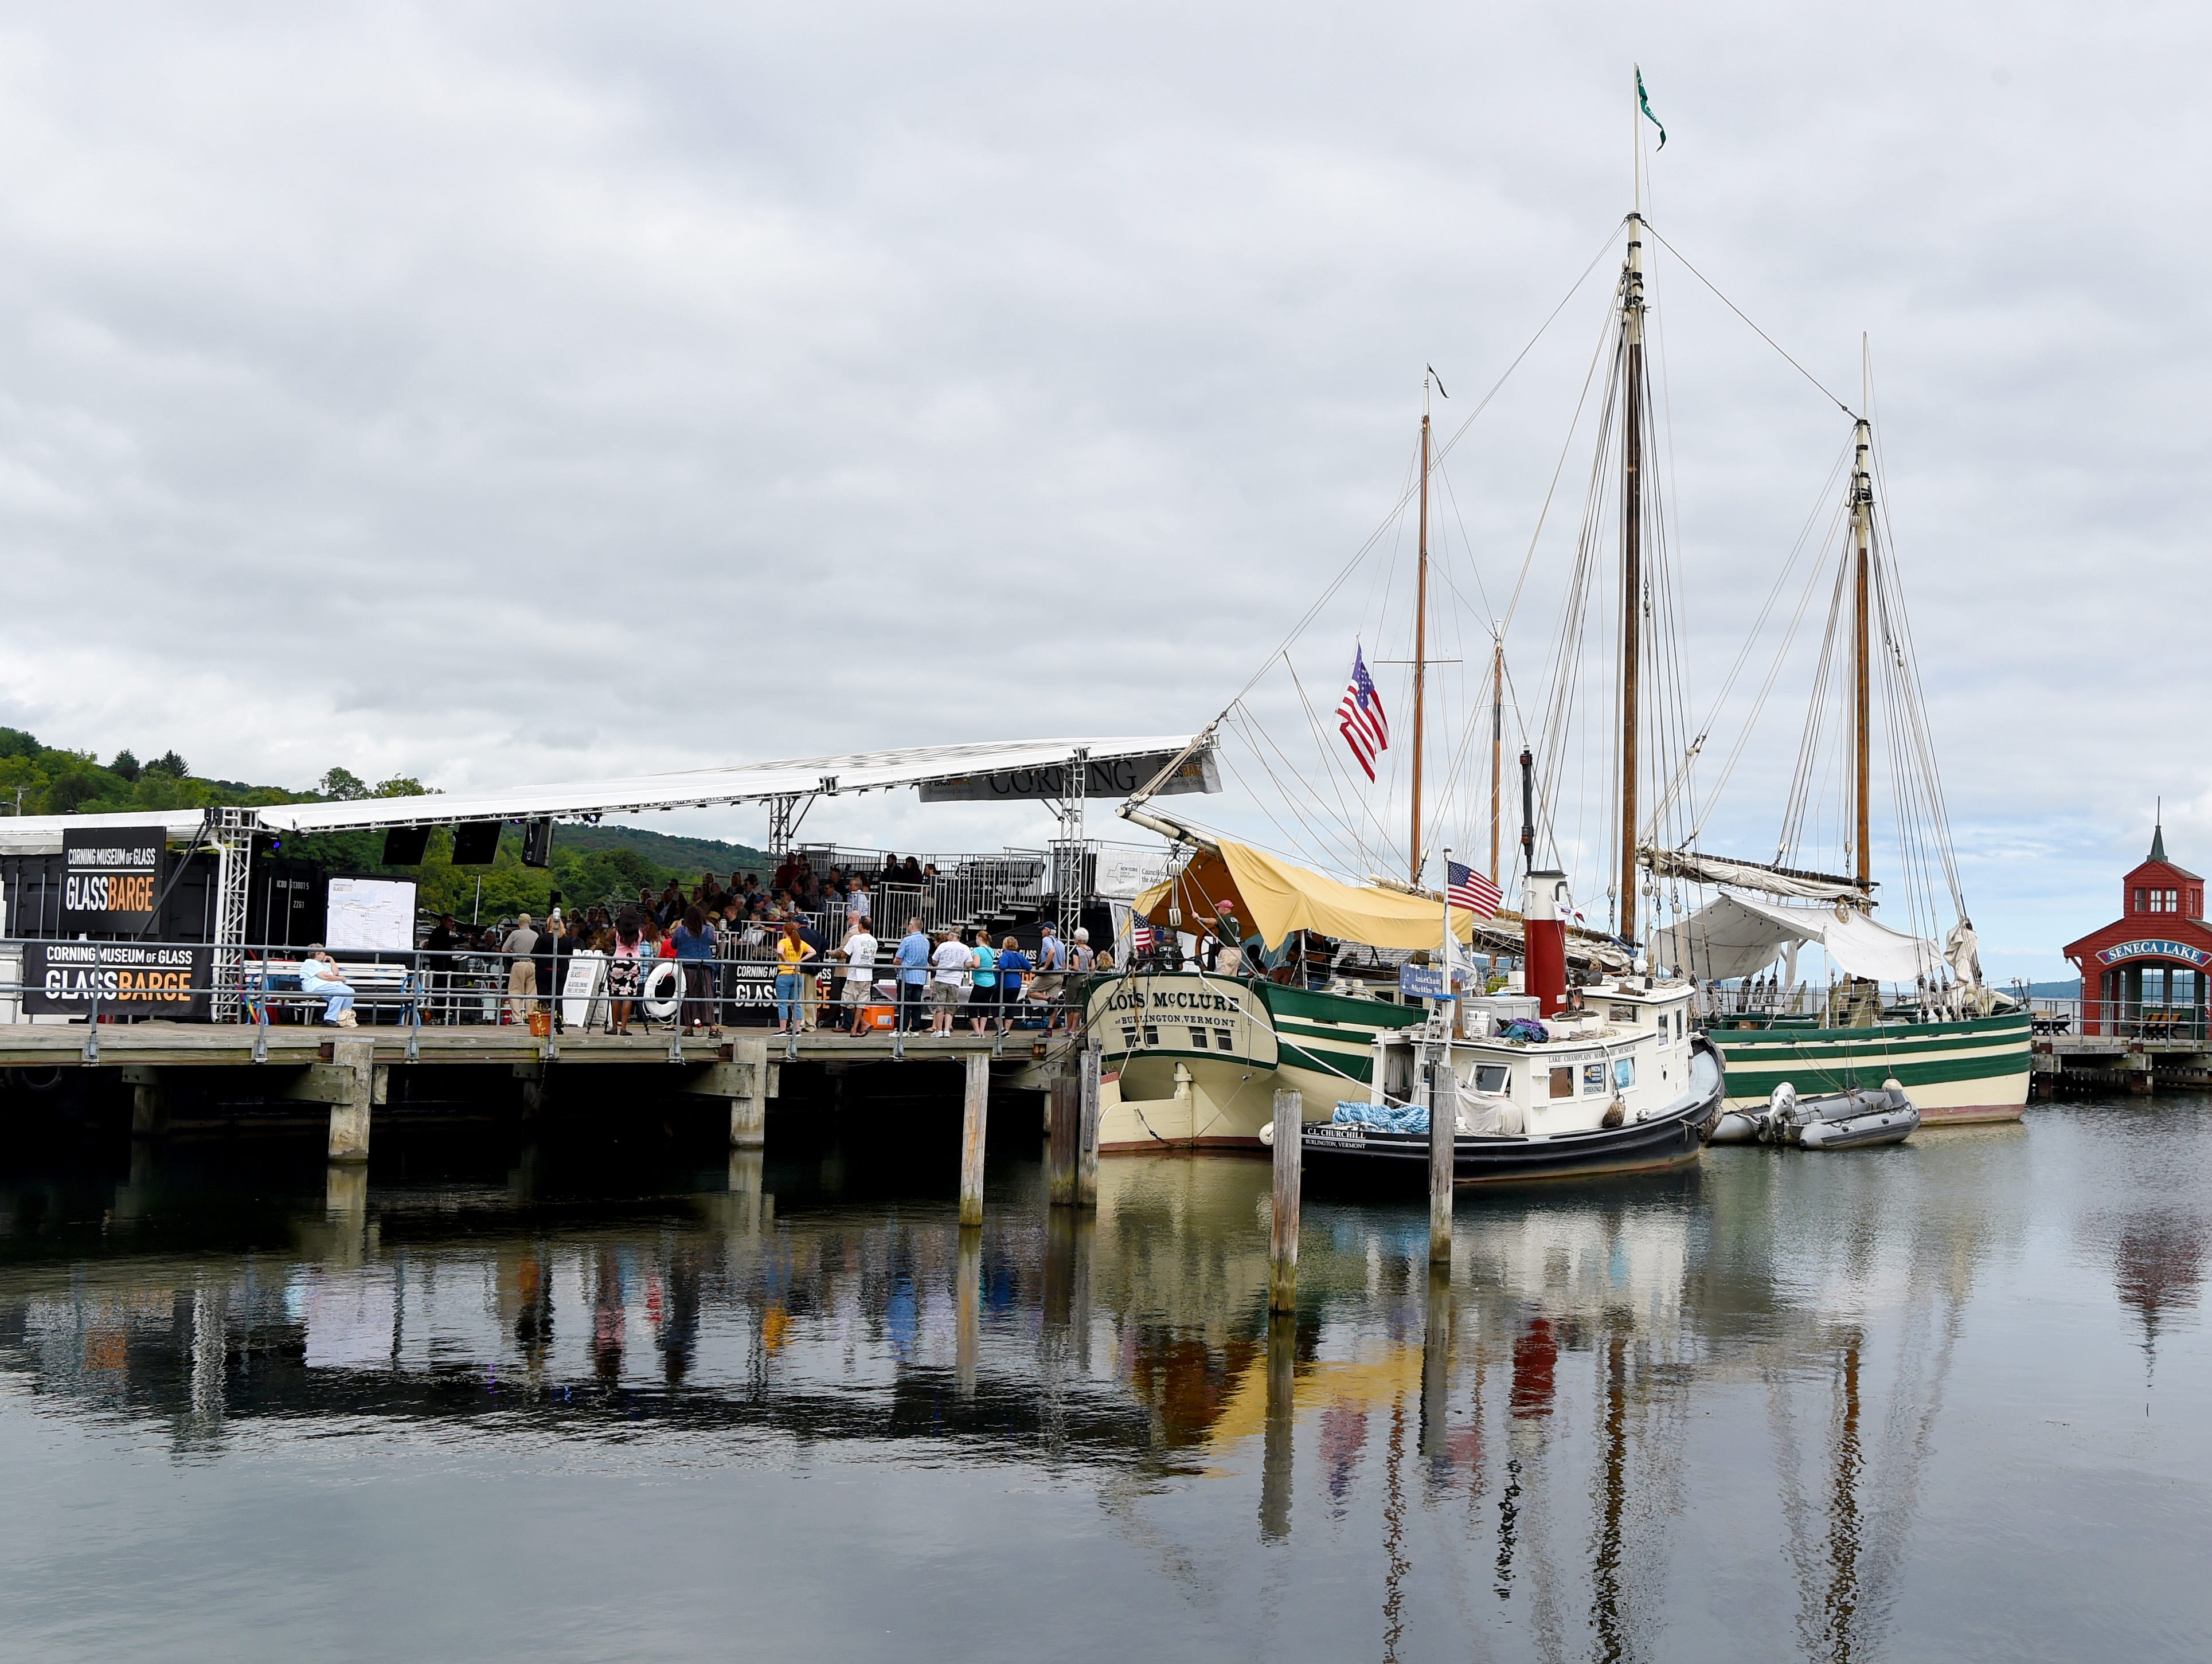 The GlassBarge, a canal boat with patented glass-making equipment, is nearing the end of its four-month long Erie Canal journey from Brooklyn to Corning. Presented by the Corning Museum of Glass, the GlassBarge is currently docked in Watkins Glen on Seneca Lake and welcomes visitors to glassmaking demonstrations. Friday, September 14, 2018.